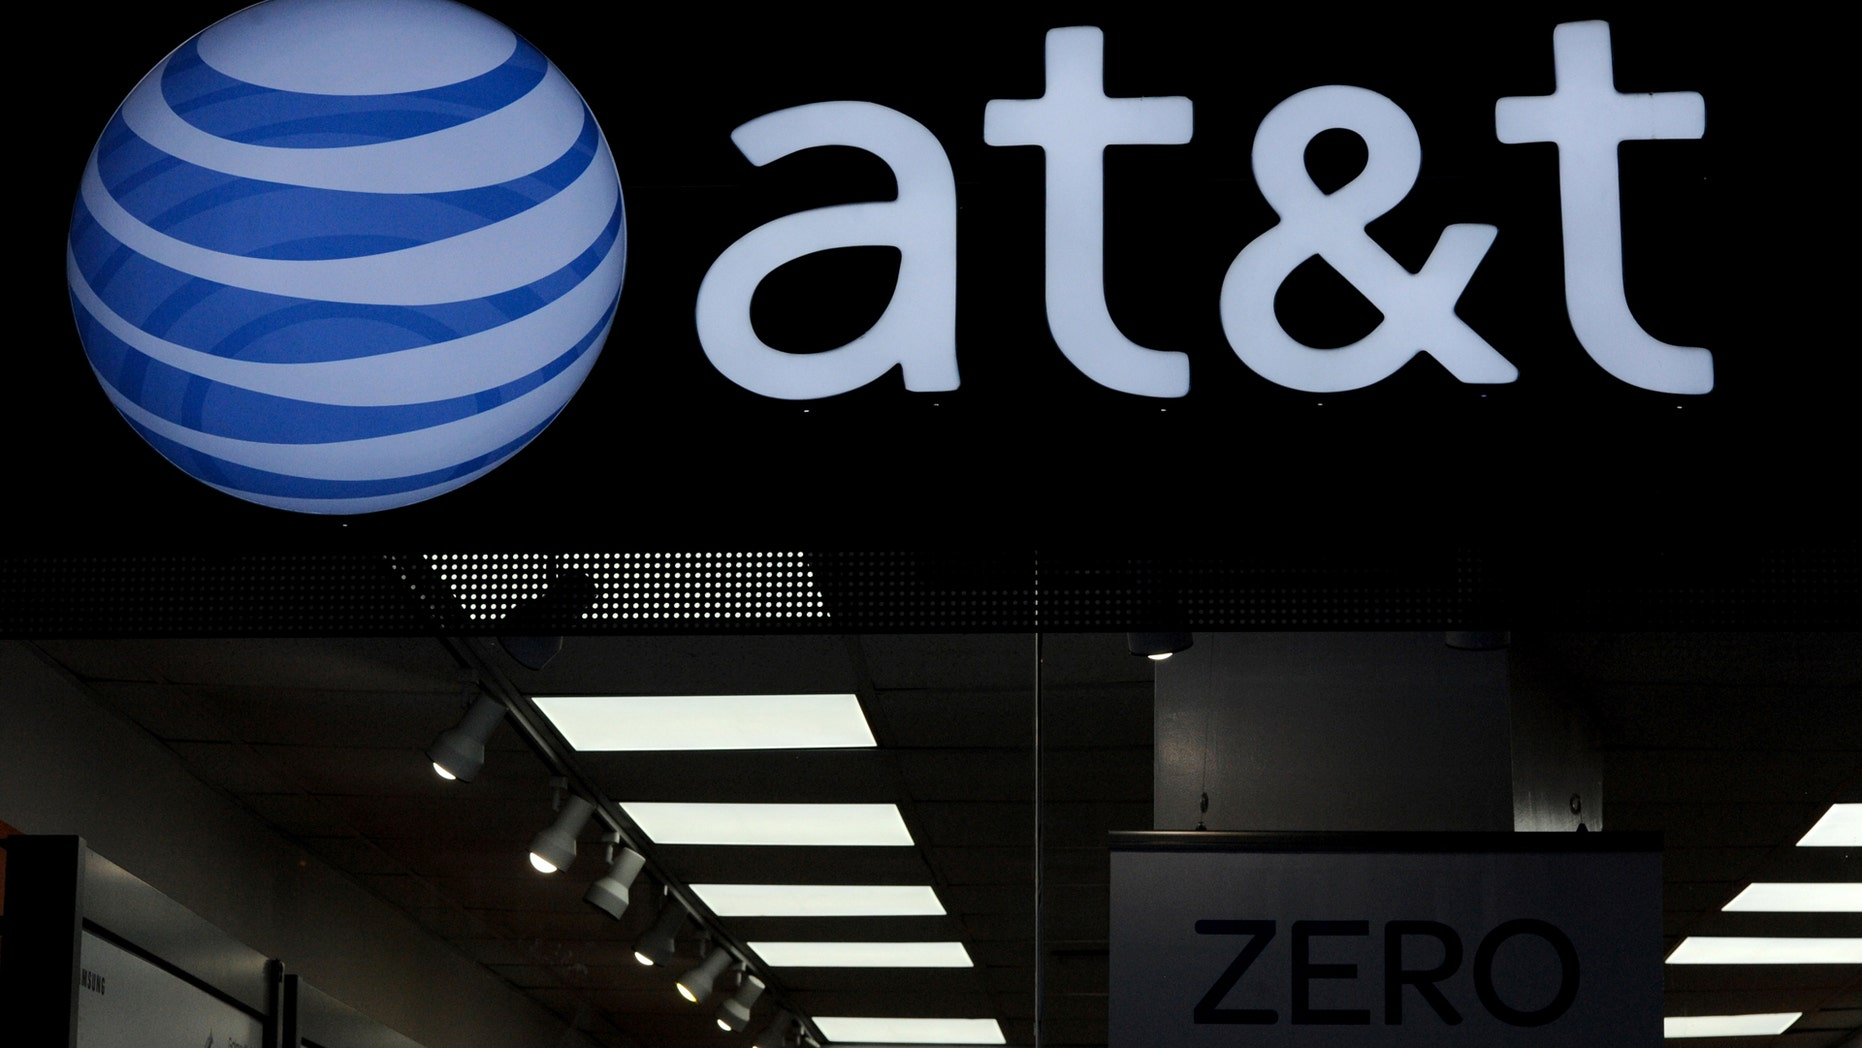 An AT&T logo is seen at a AT&T building in New York City, October 23, 2016. (REUTERS/Stephanie Keith)